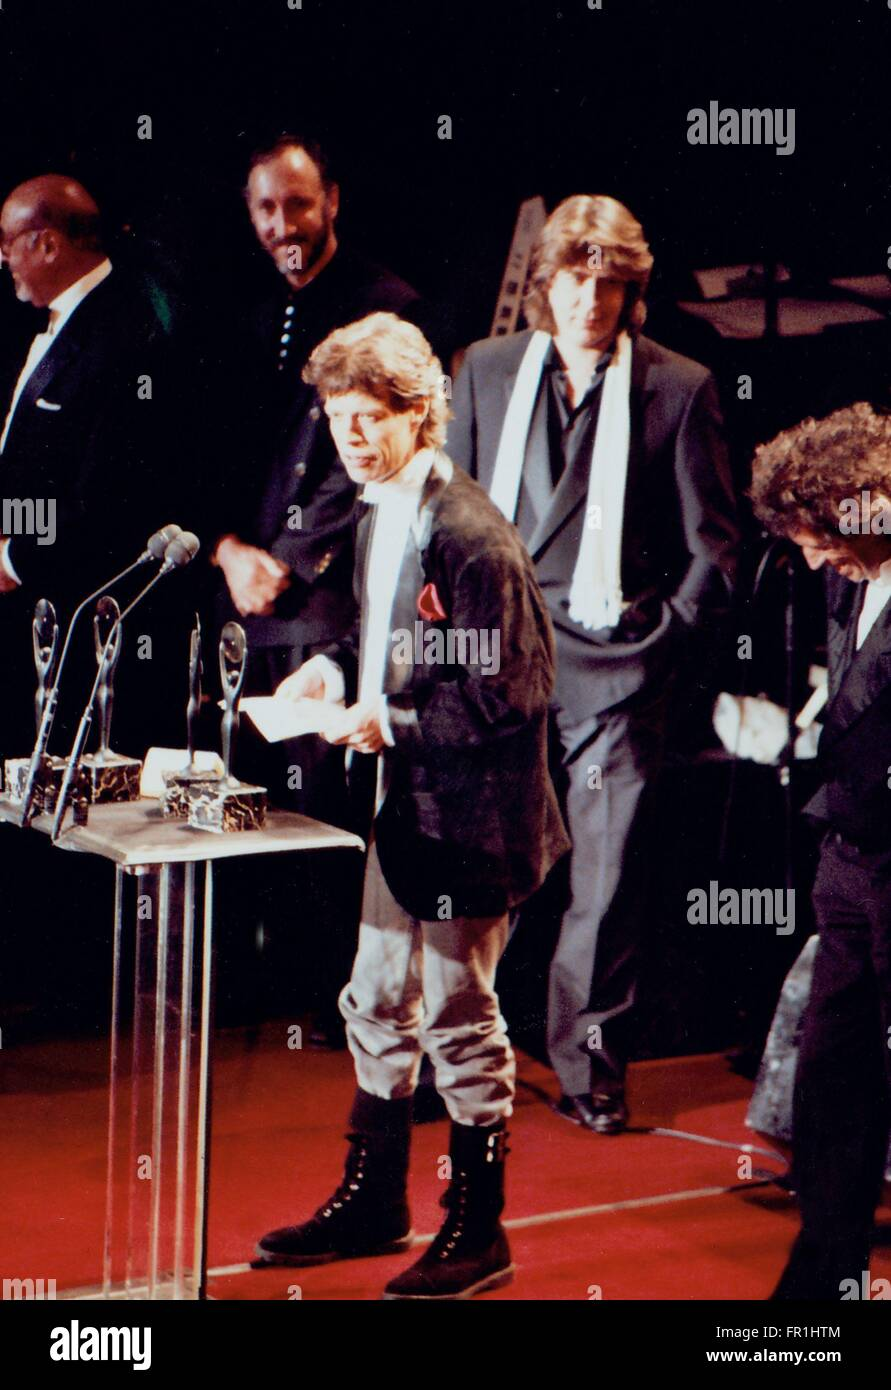 THE 4TH ANNUAL ROCK 'N' ROLL HALL OF FAME CEREMONY , THE ROLLING STONES , Mick Jagger  Pete Townshend,  - Stock Image